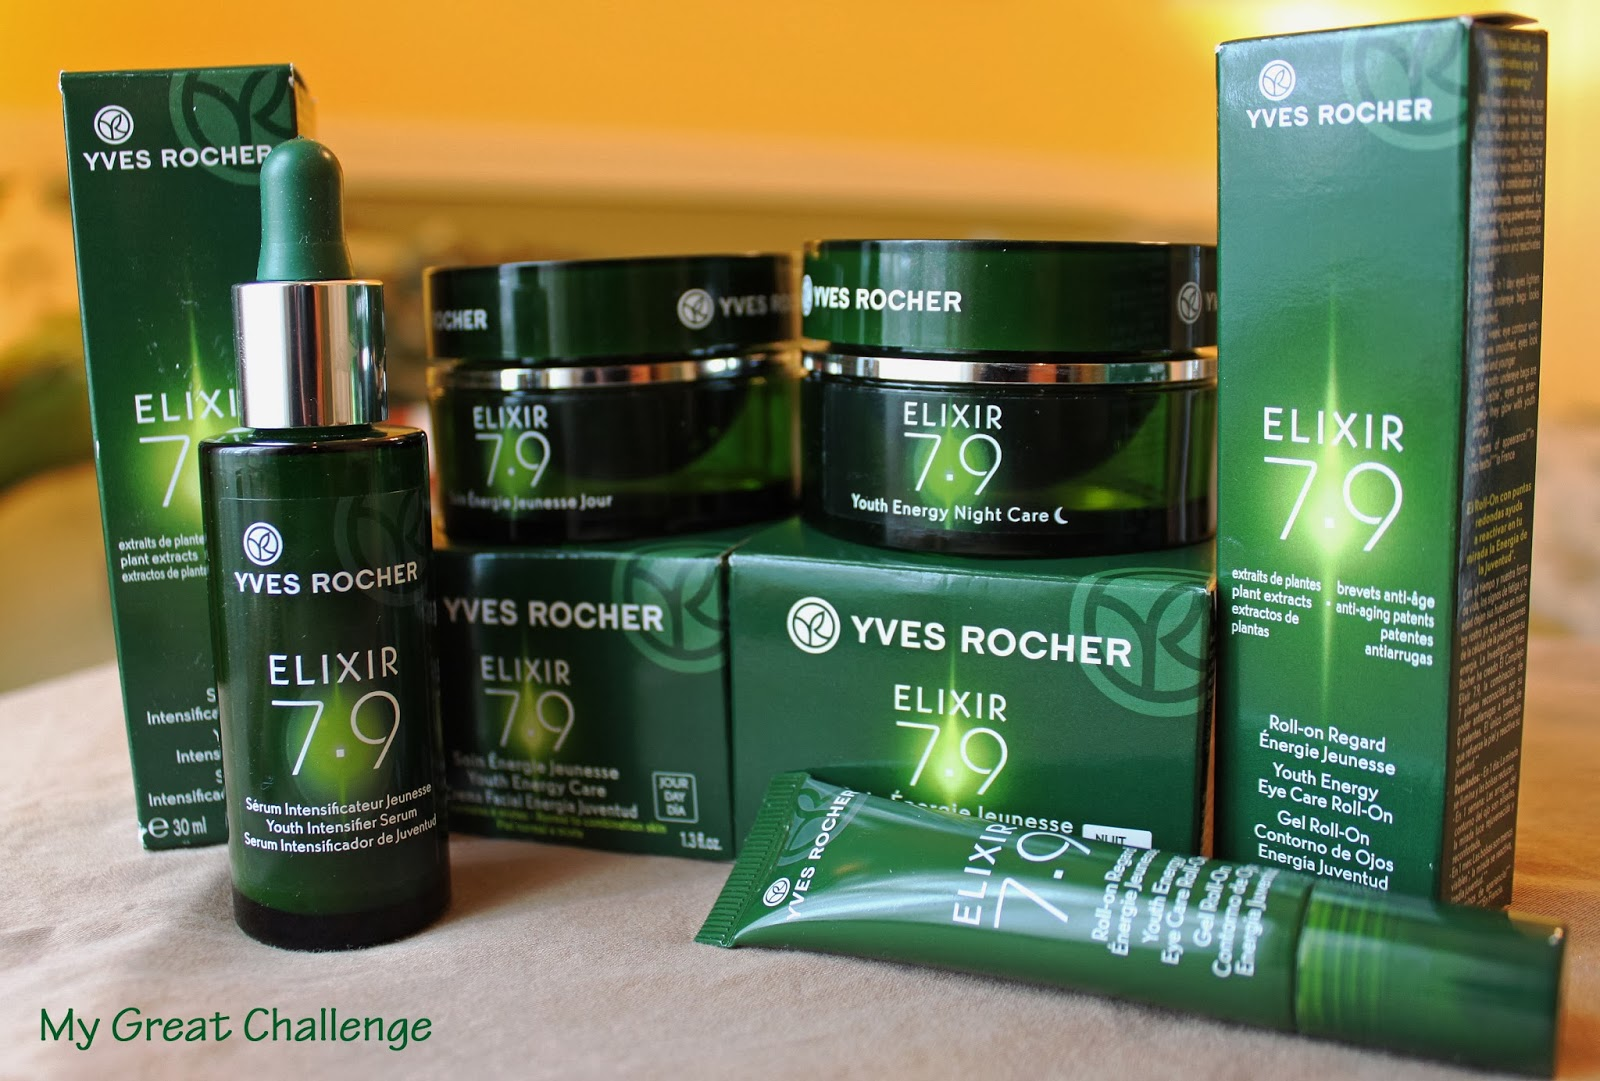 my great challenge yves rocher 7 9 elixir review and 1500 subscriber giveaway 2 14